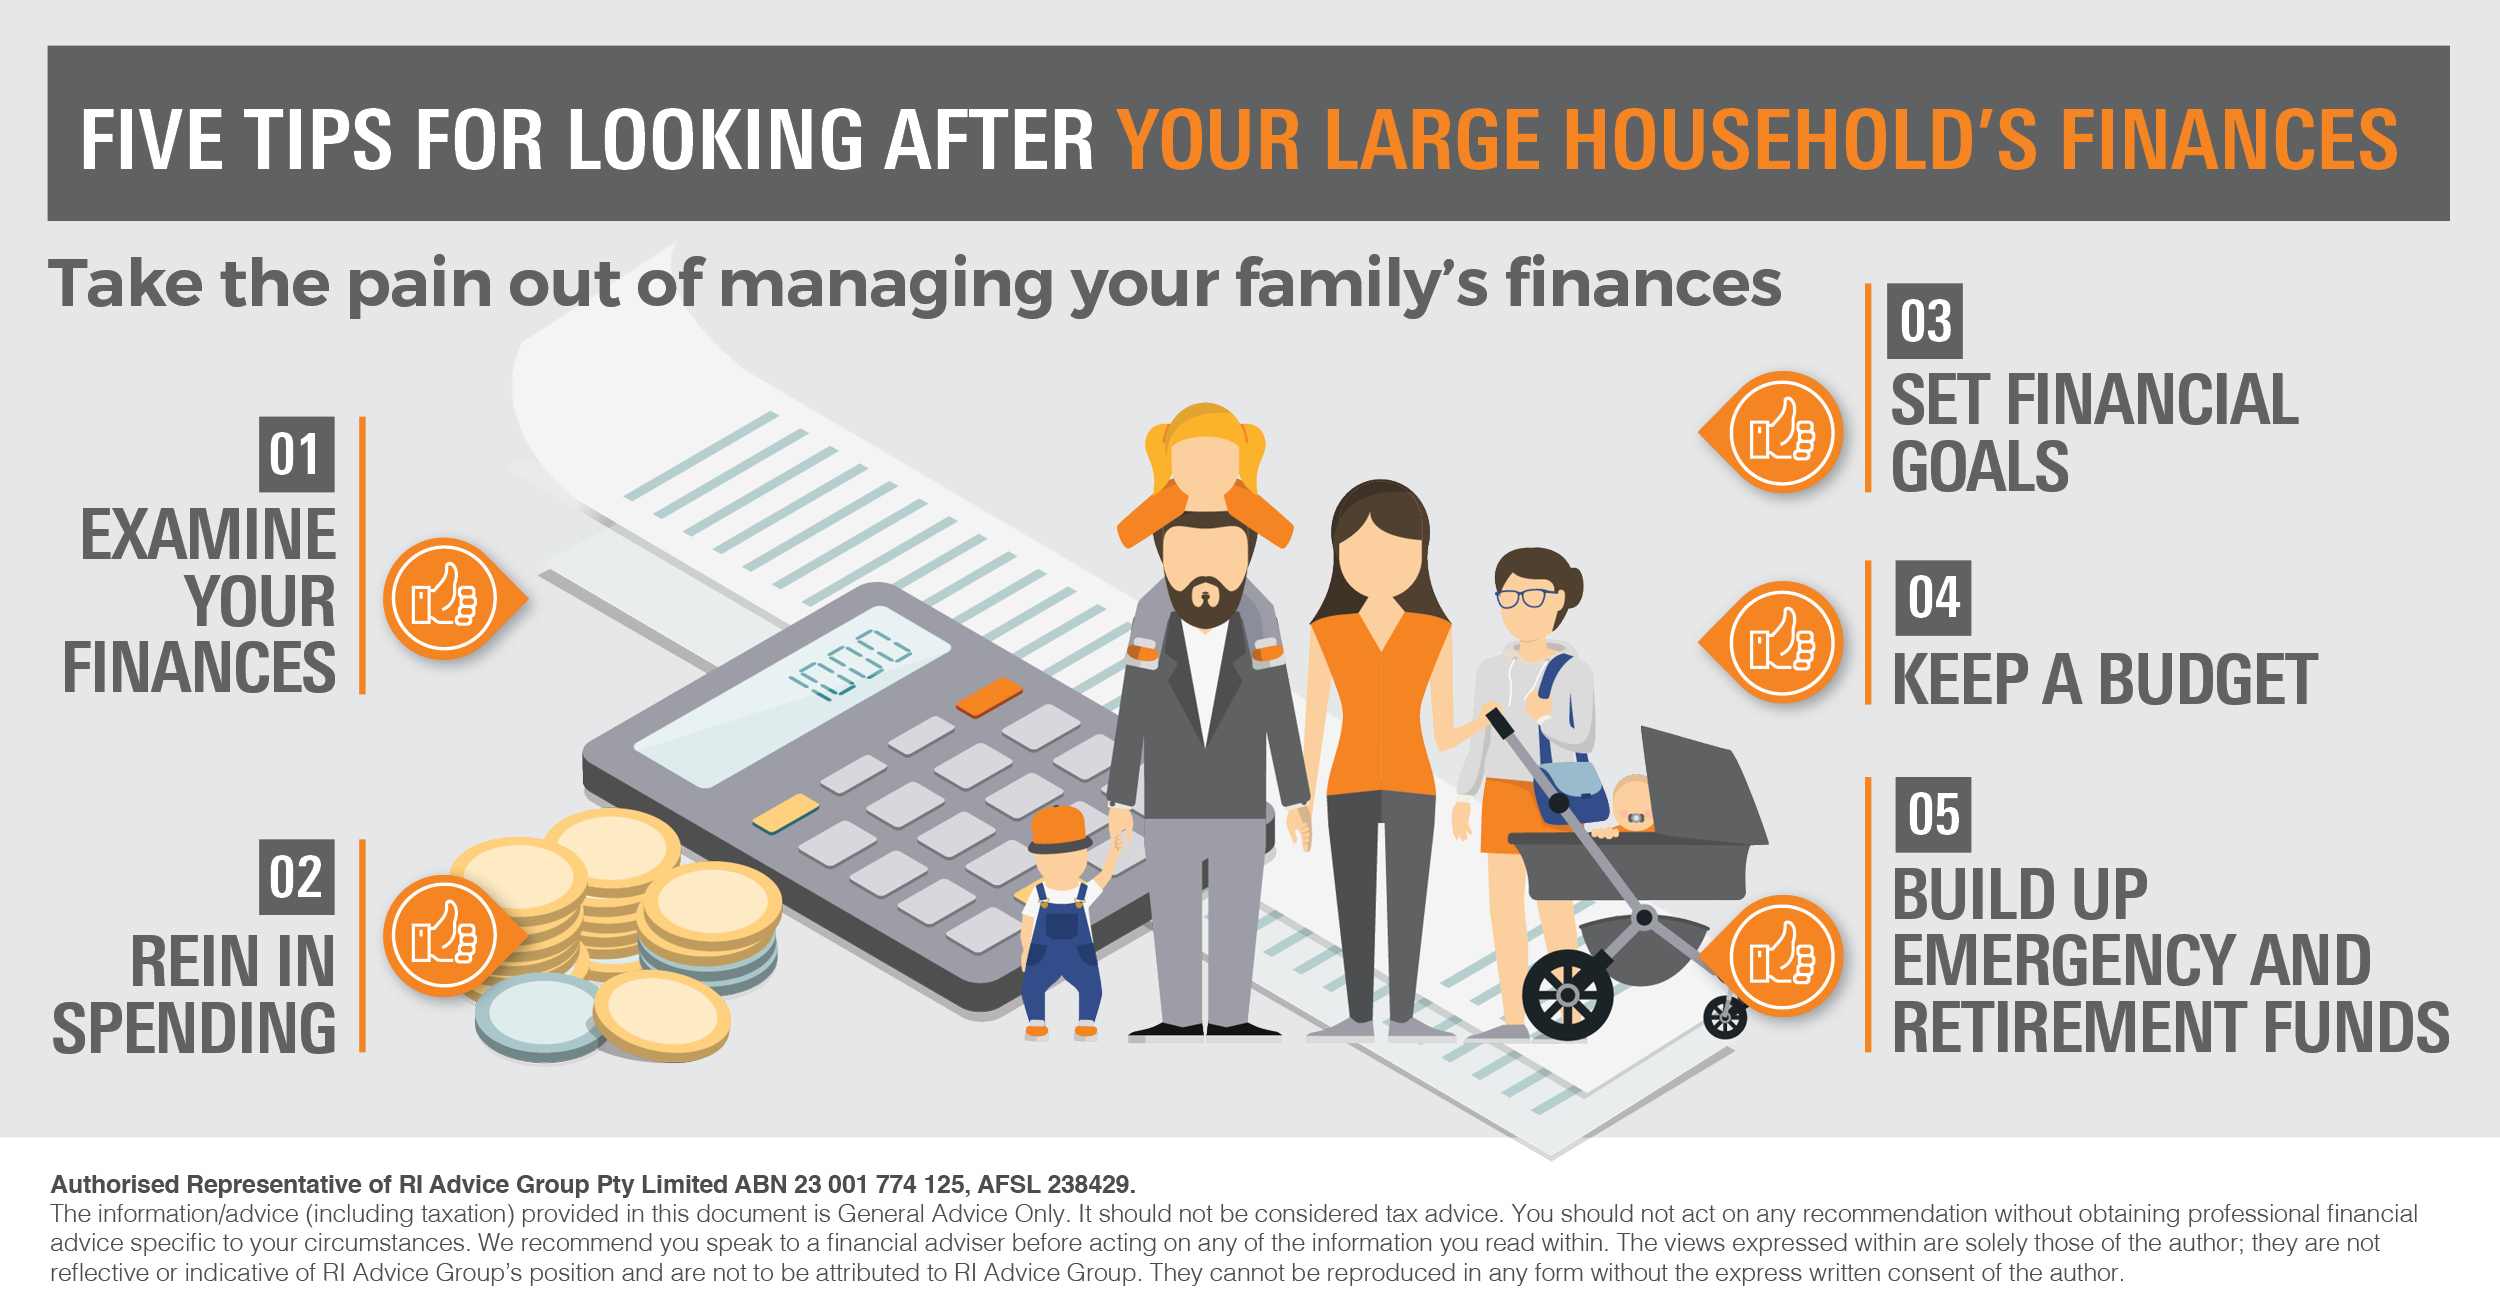 Infographic_Five tips for looking after your large household's finances_RI